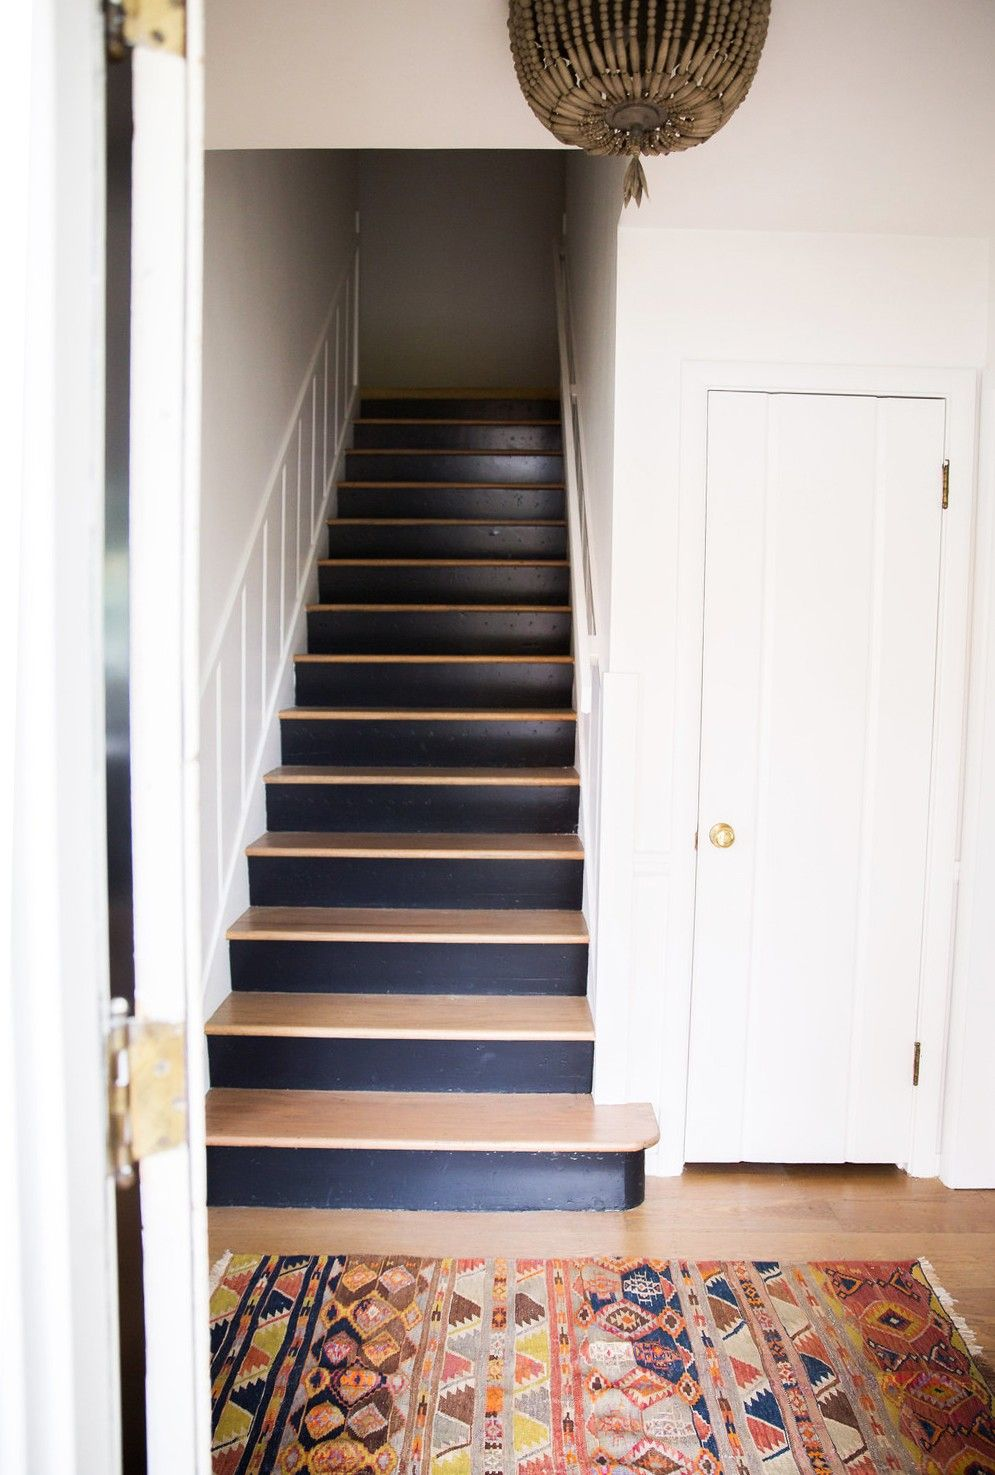 9 things we learned from one blogger 39 s boho home i 39 m floored - Interior stair treads and risers ...